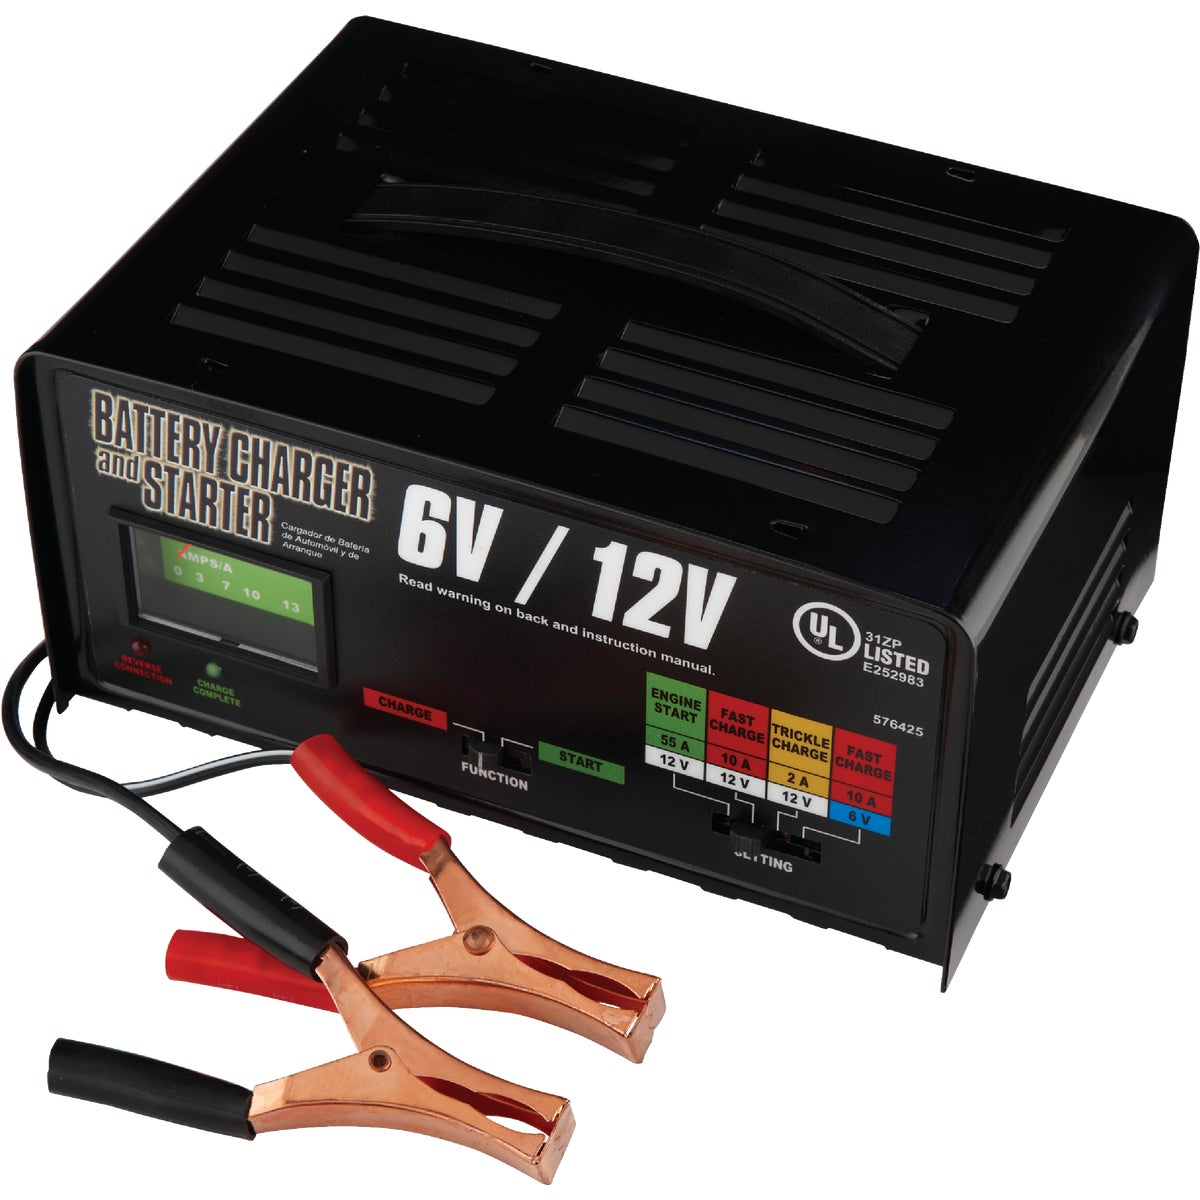 2-10-55 Battery Charger